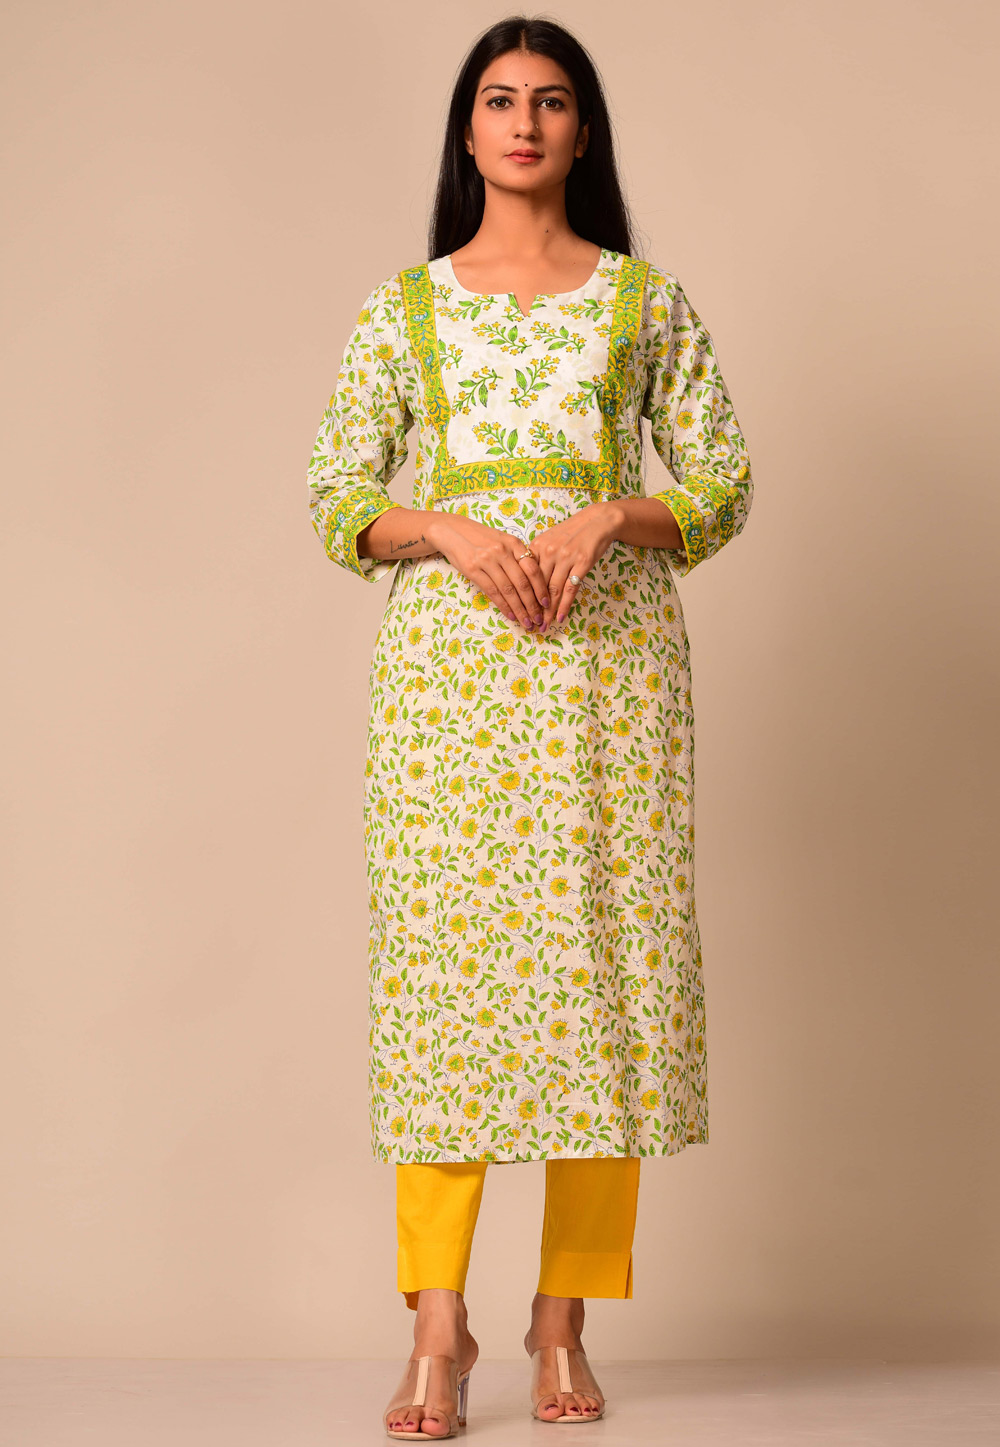 Off White Cotton Readymade Printed Tunic 207342